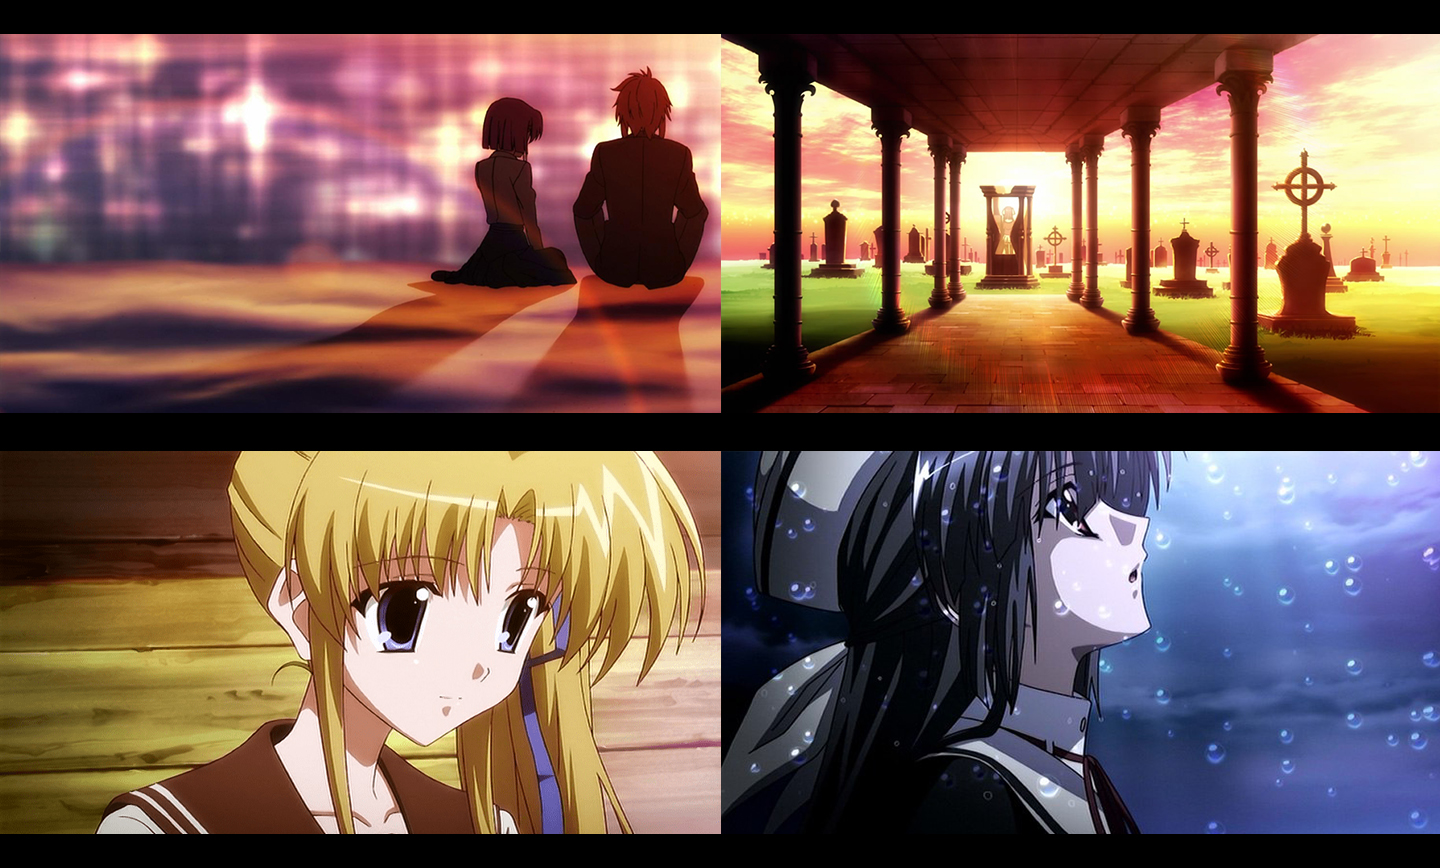 ef_3 Anime: ef: A Tale of Memories / Melodies